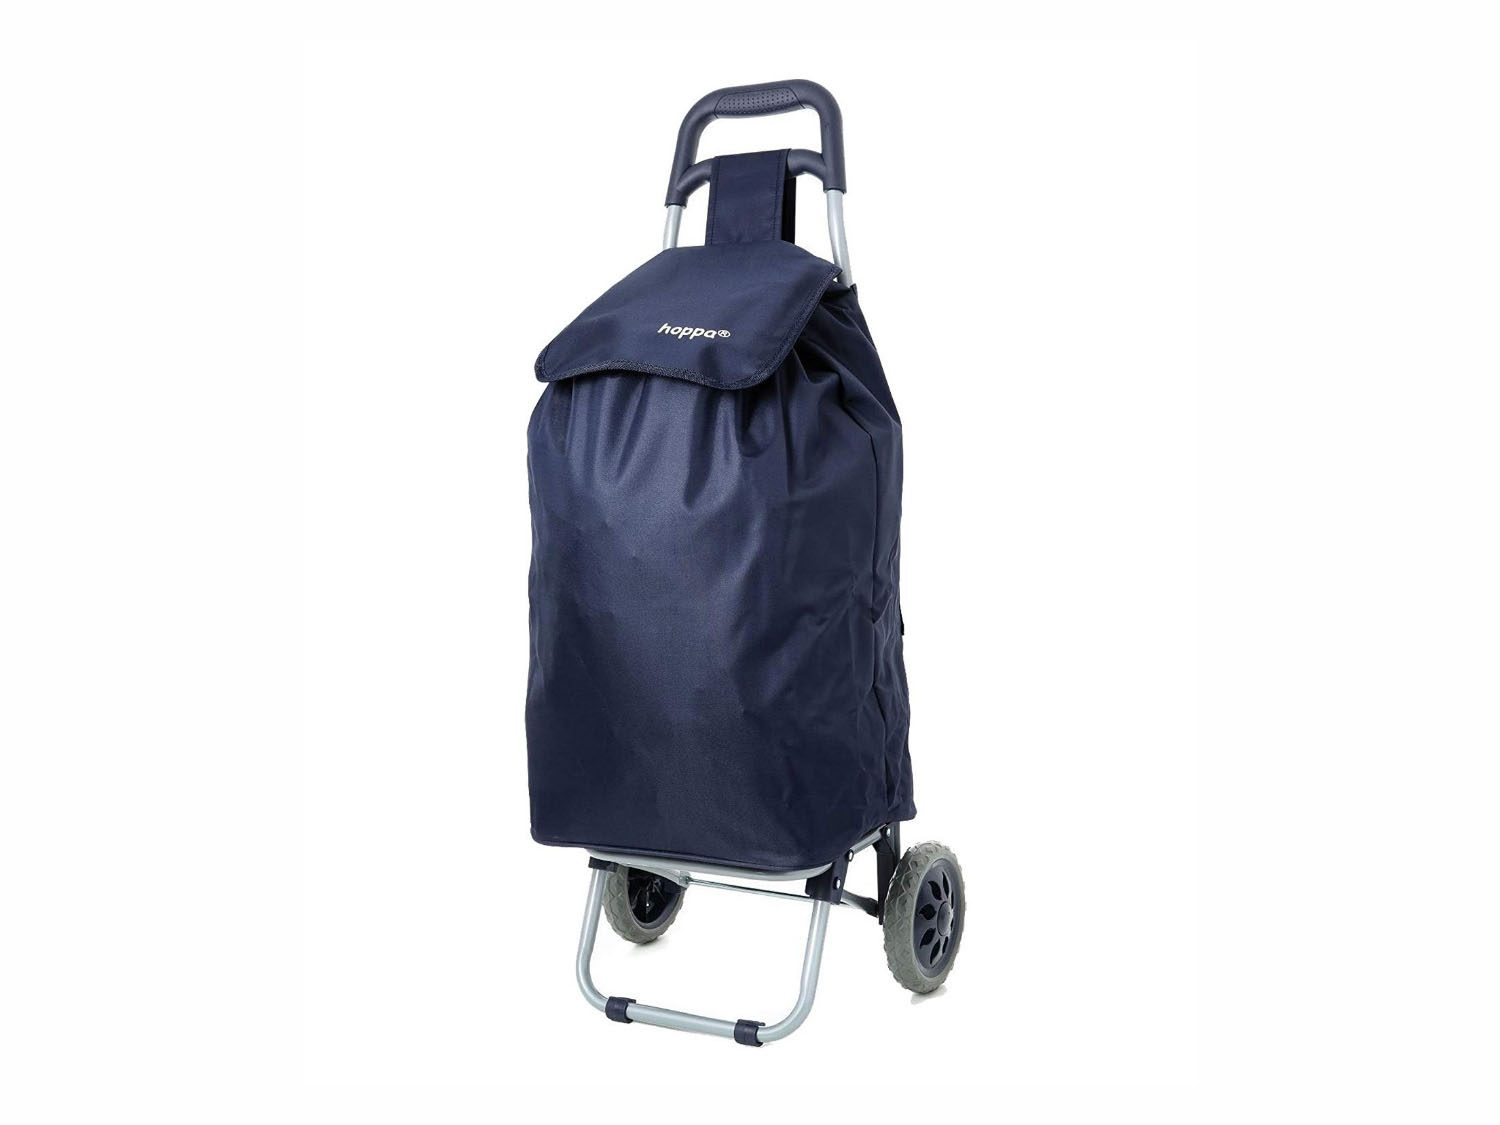 Example of a foldable shopping trolley